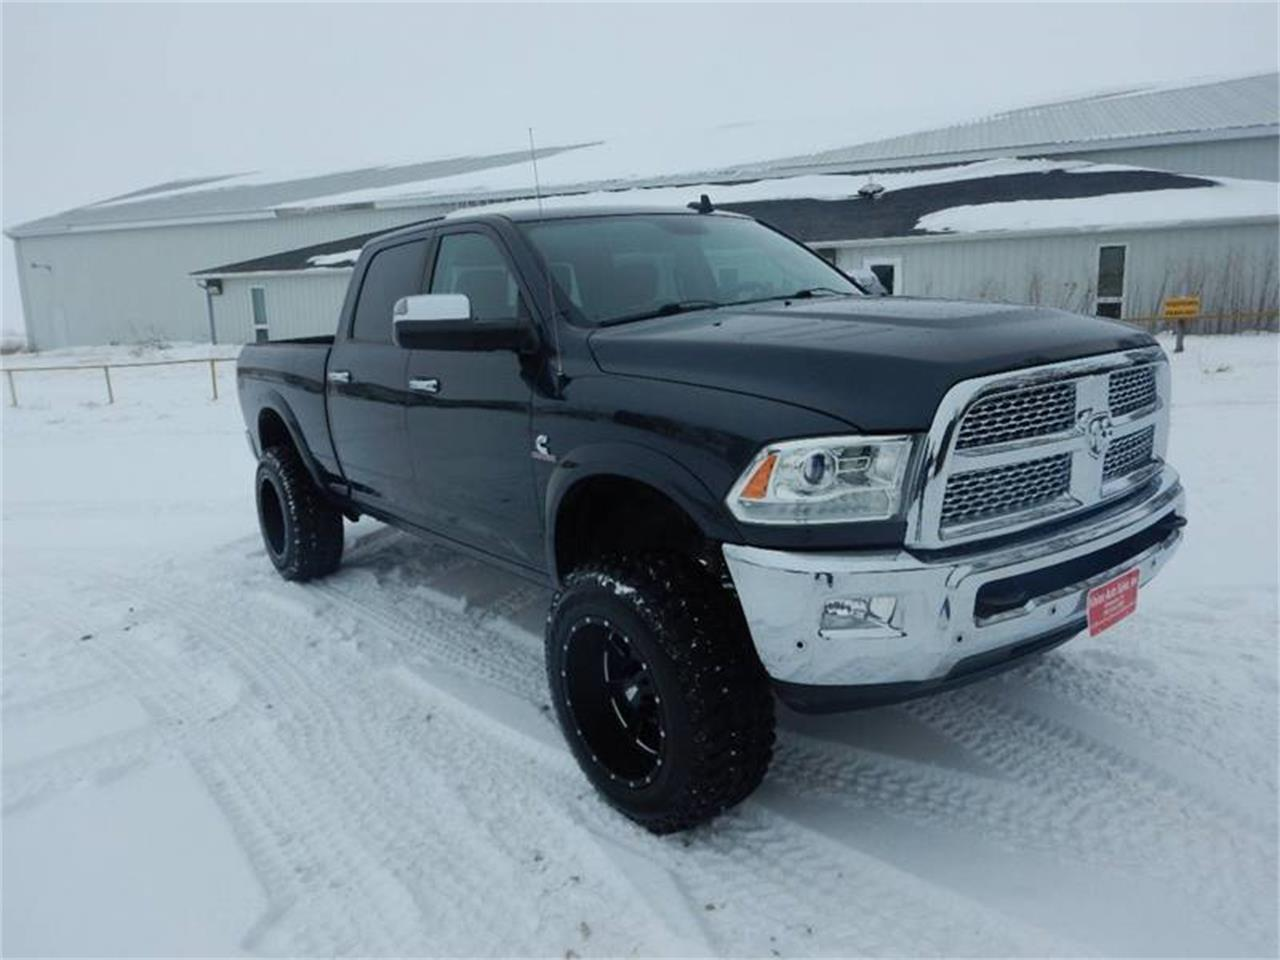 2014 Dodge Ram 2500 (CC-1180719) for sale in Clarence, Iowa